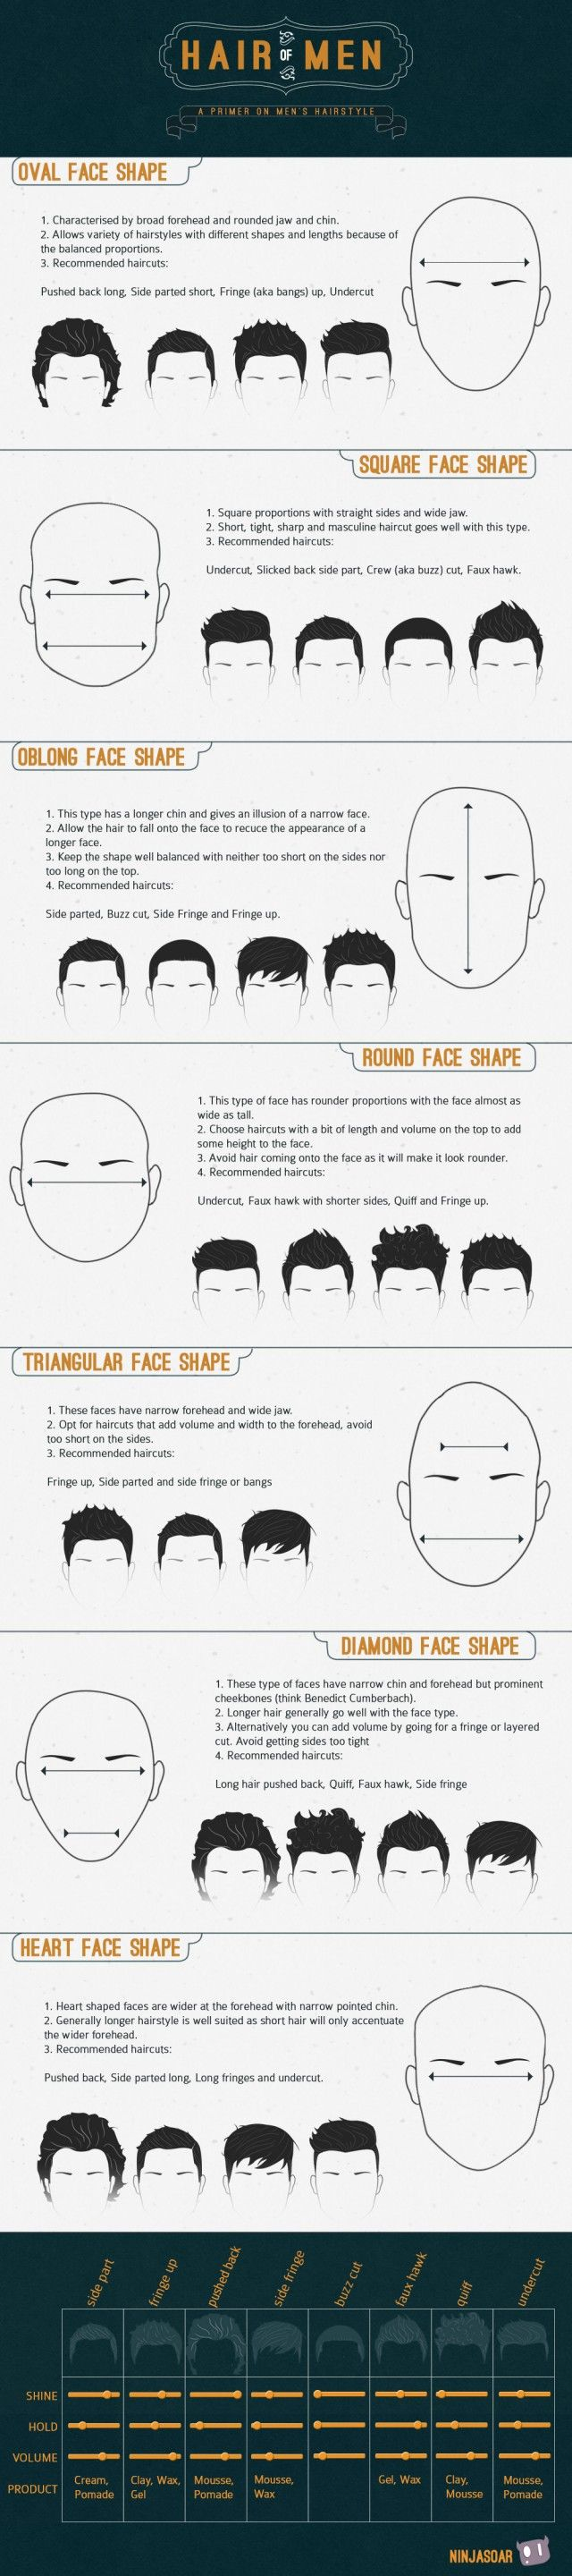 V style haircut men the hair of men what hairstyle is best for you  do you fancy an